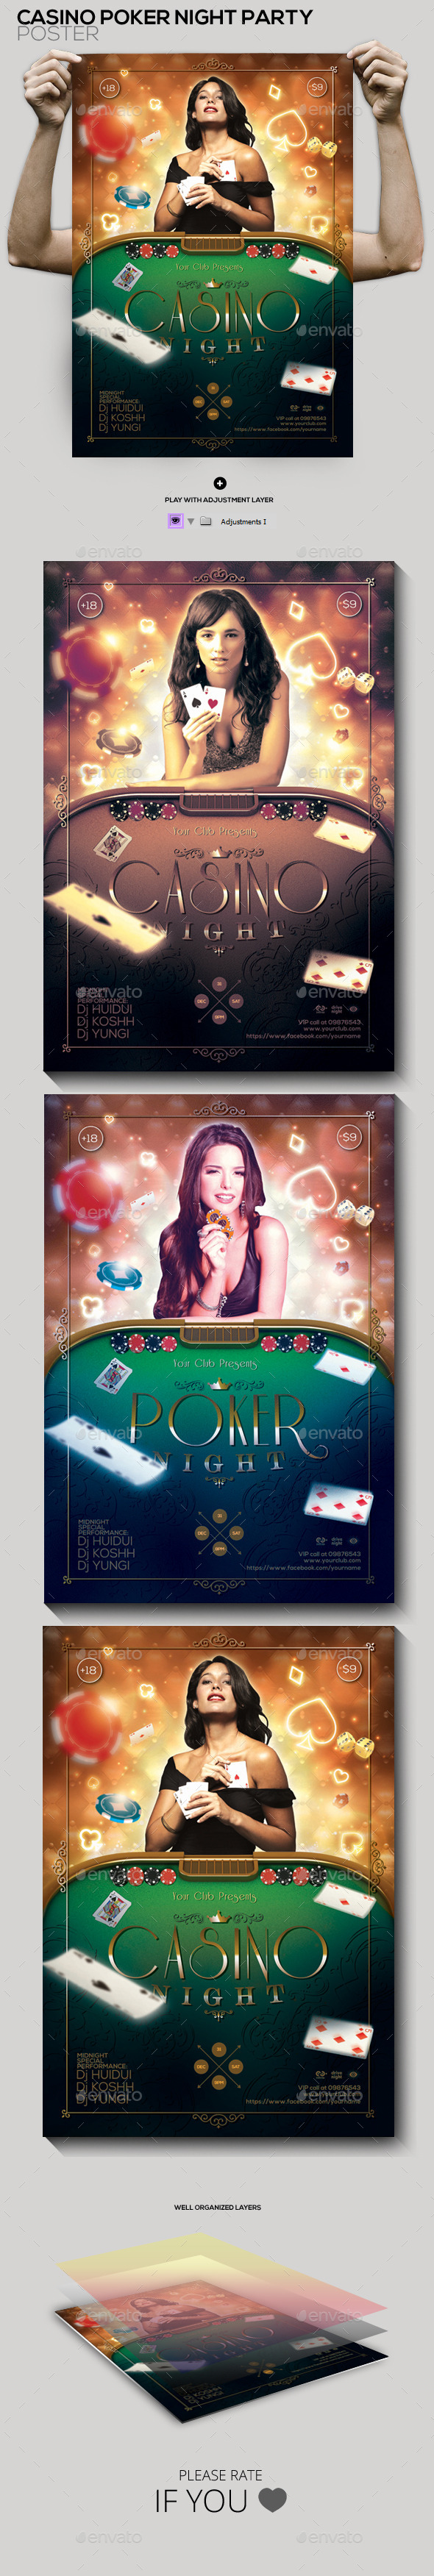 Casino Poker Night Party Poster/ Flyer - Clubs & Parties Events